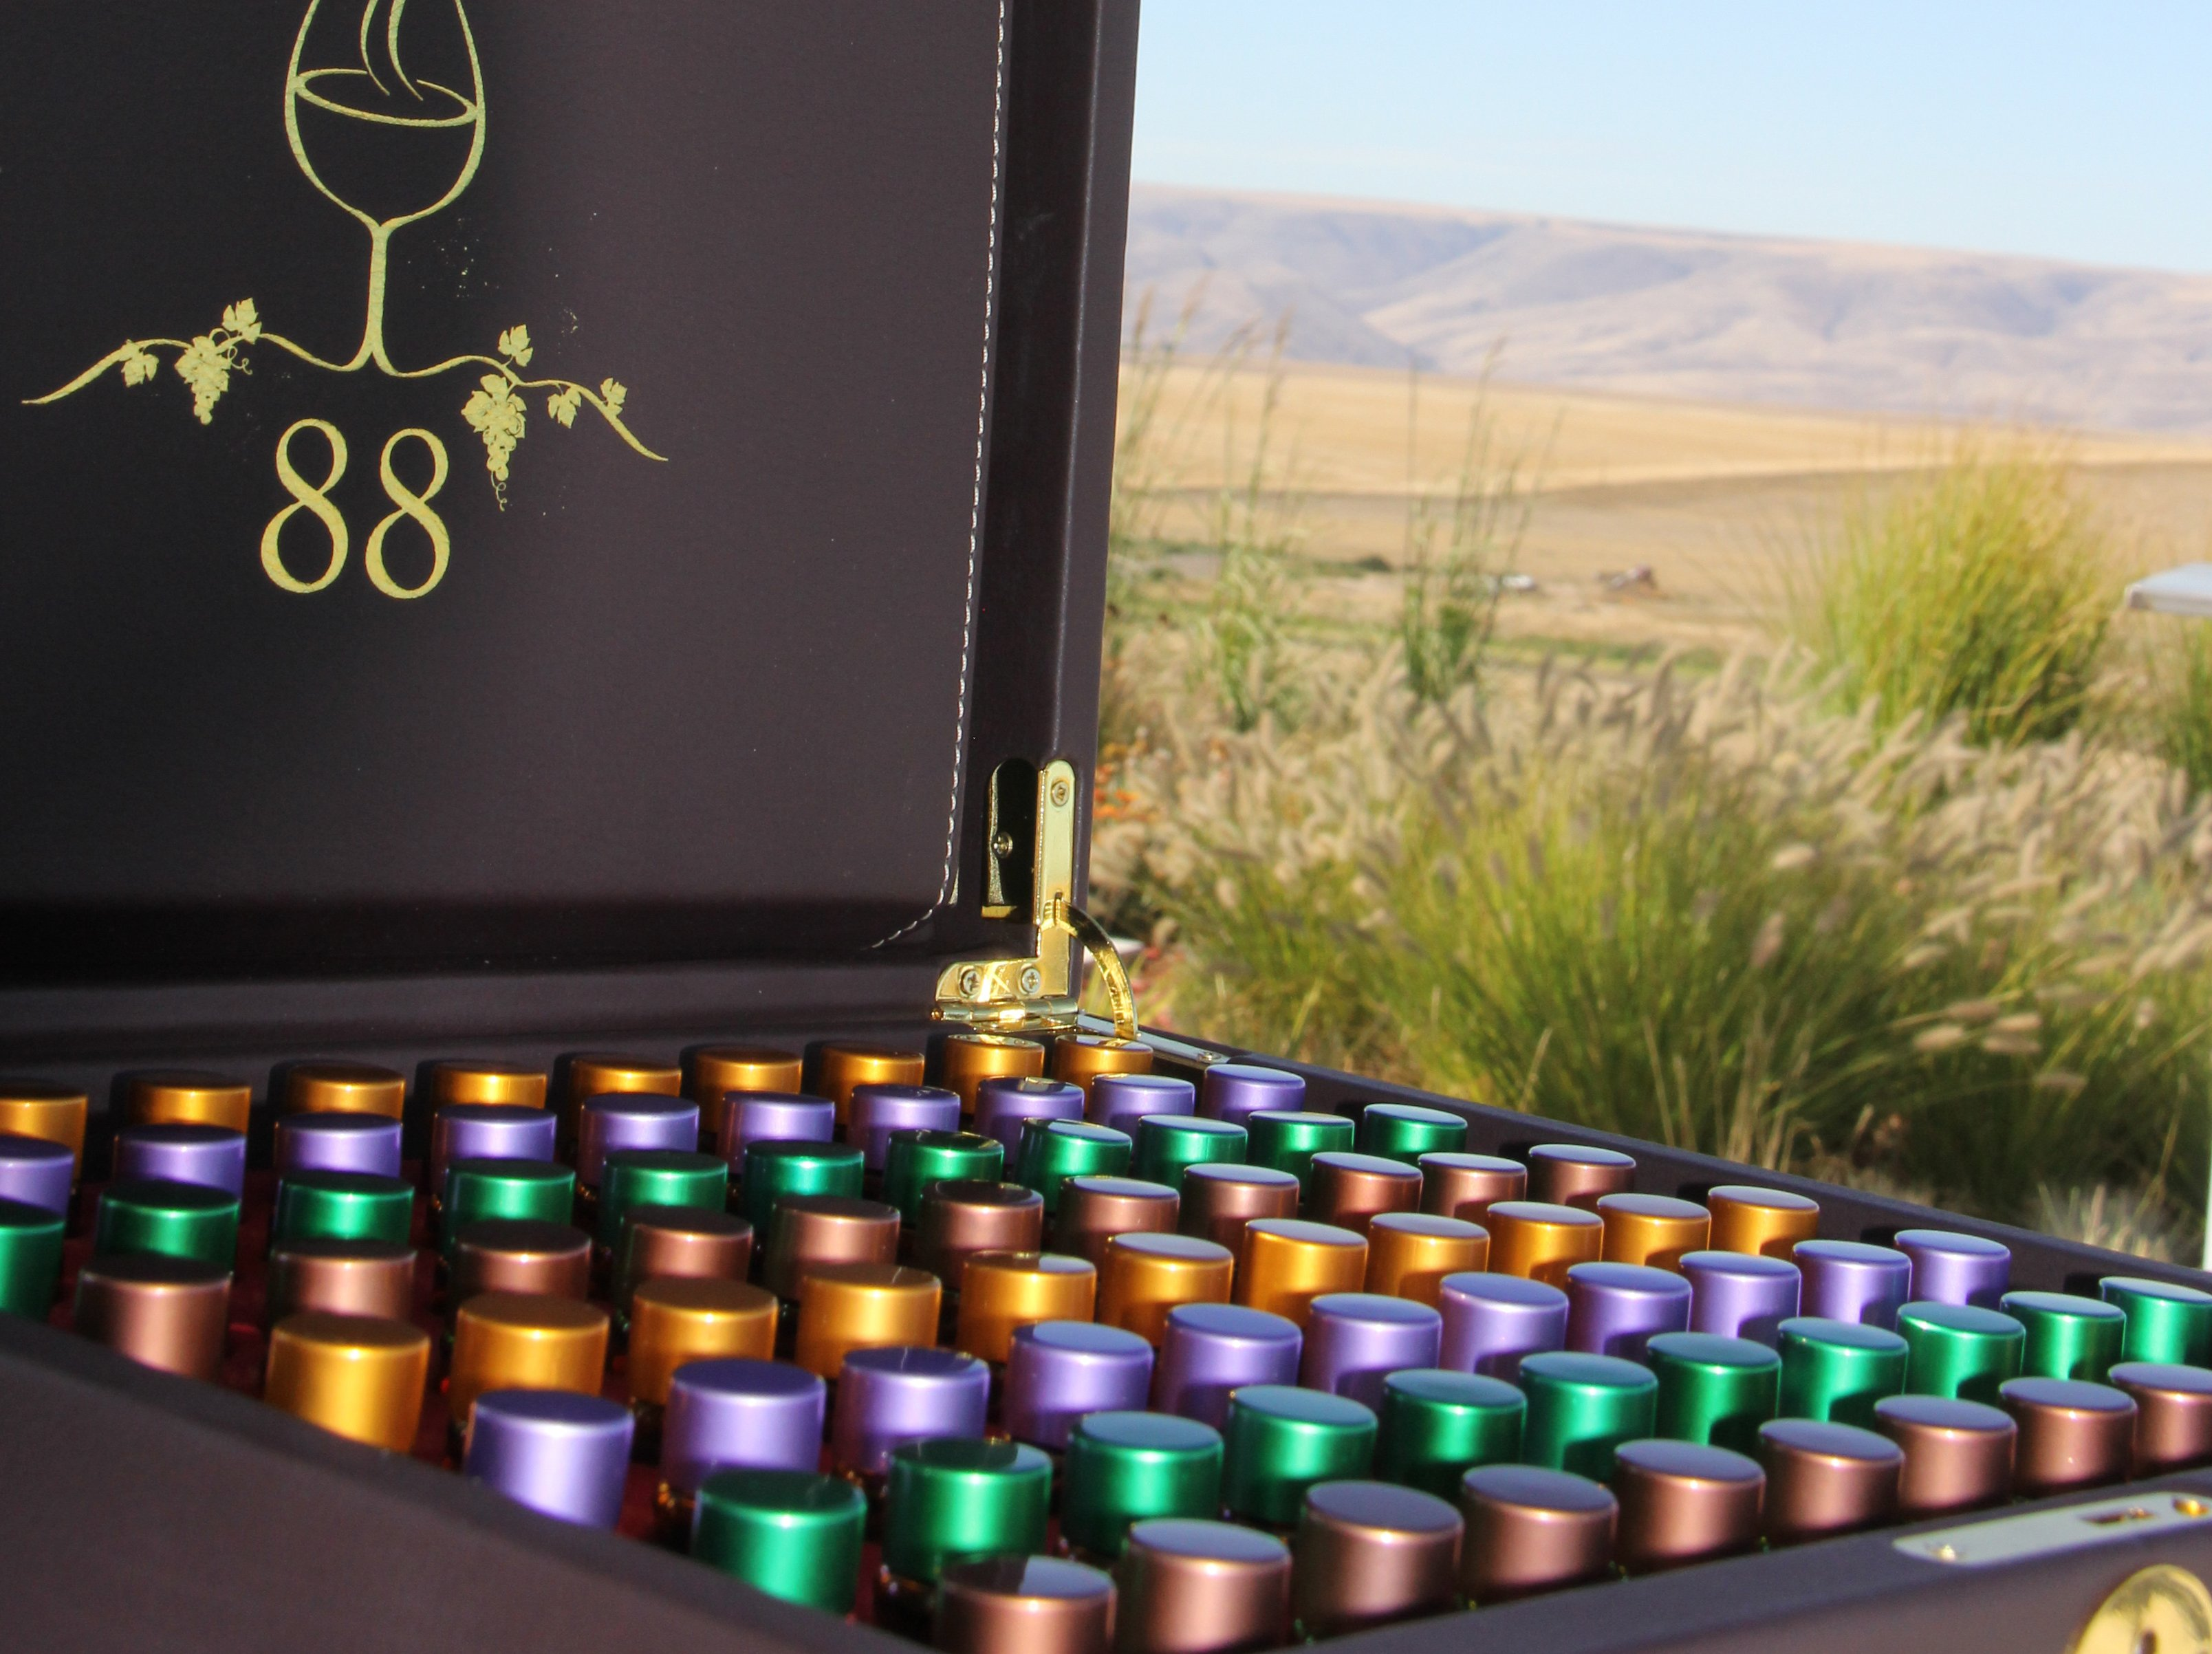 The 88-aroma scent box is there to increase your enjoyment of the many wines you will taste while on the Twisted Vine Wine Tour